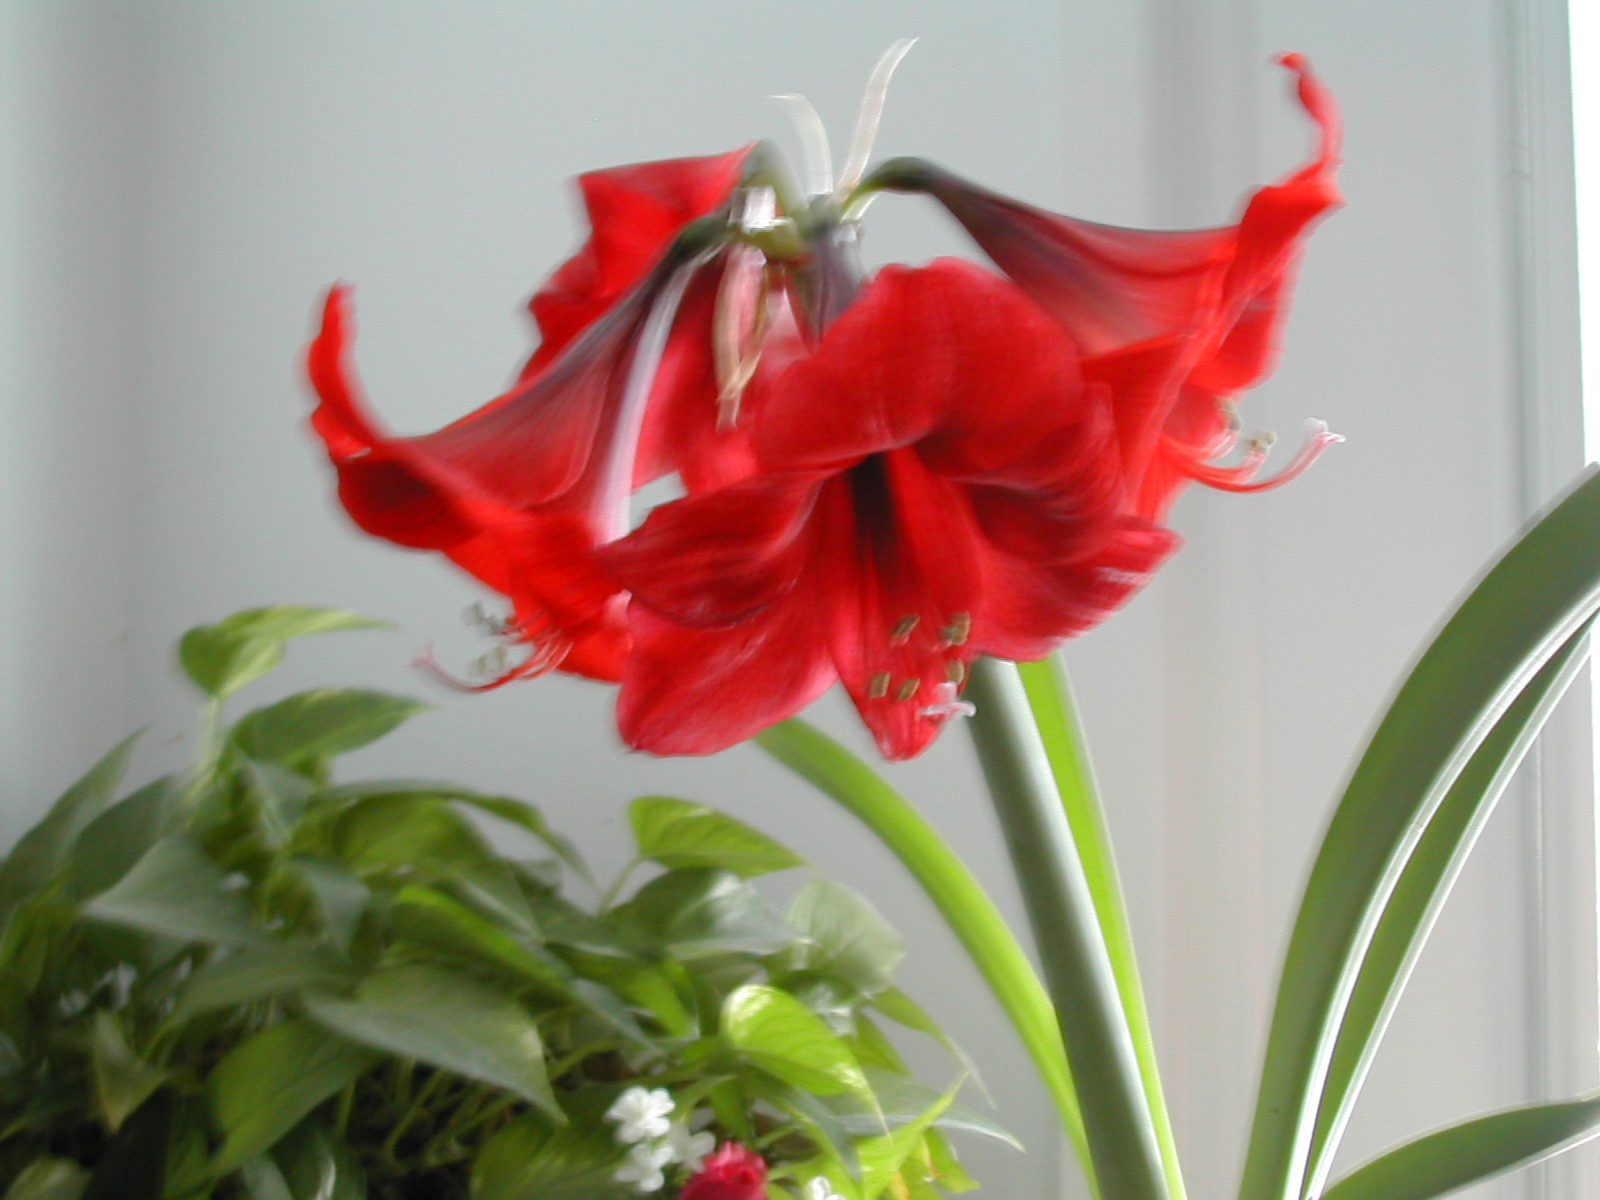 The other red christmas flower amaryllis planting and care dons the other red christmas flower amaryllis planting and care mightylinksfo